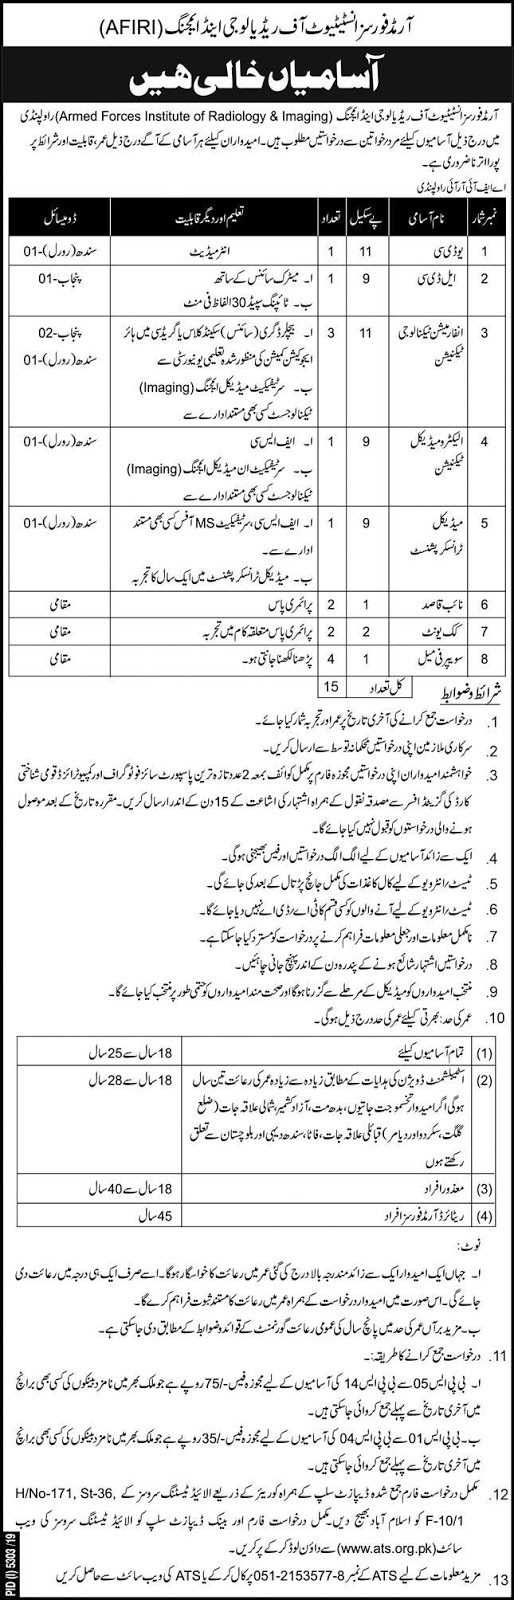 Jobs in Armed Forces Institute of Radiology and Imaging, AFIRI Islamabad